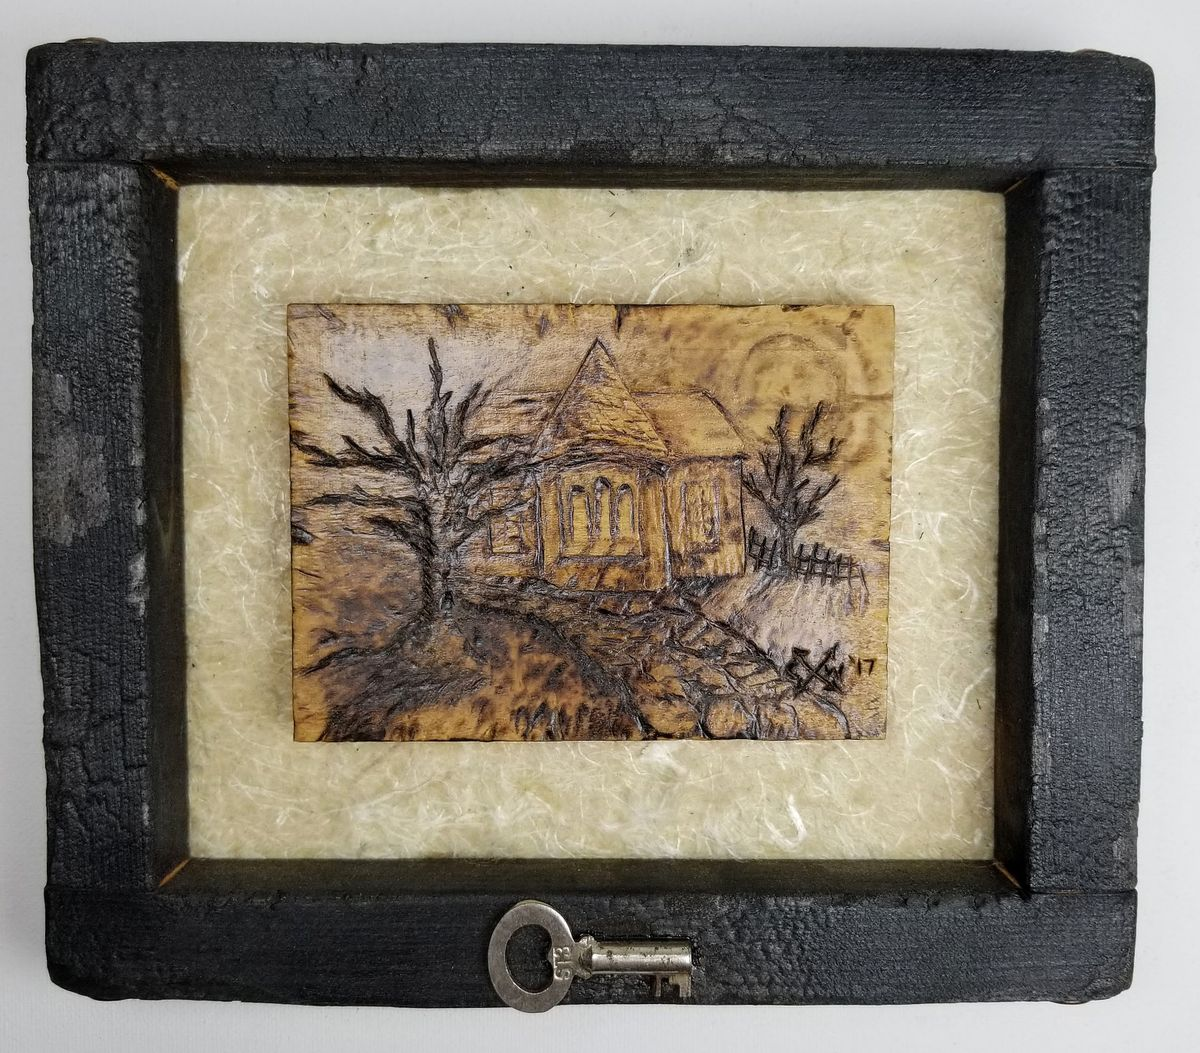 2_Terry and Sarah Snow_Chaos Woods_Thoughts of Home_Austin Art_Austin Artist_Austin Gifts.jpg